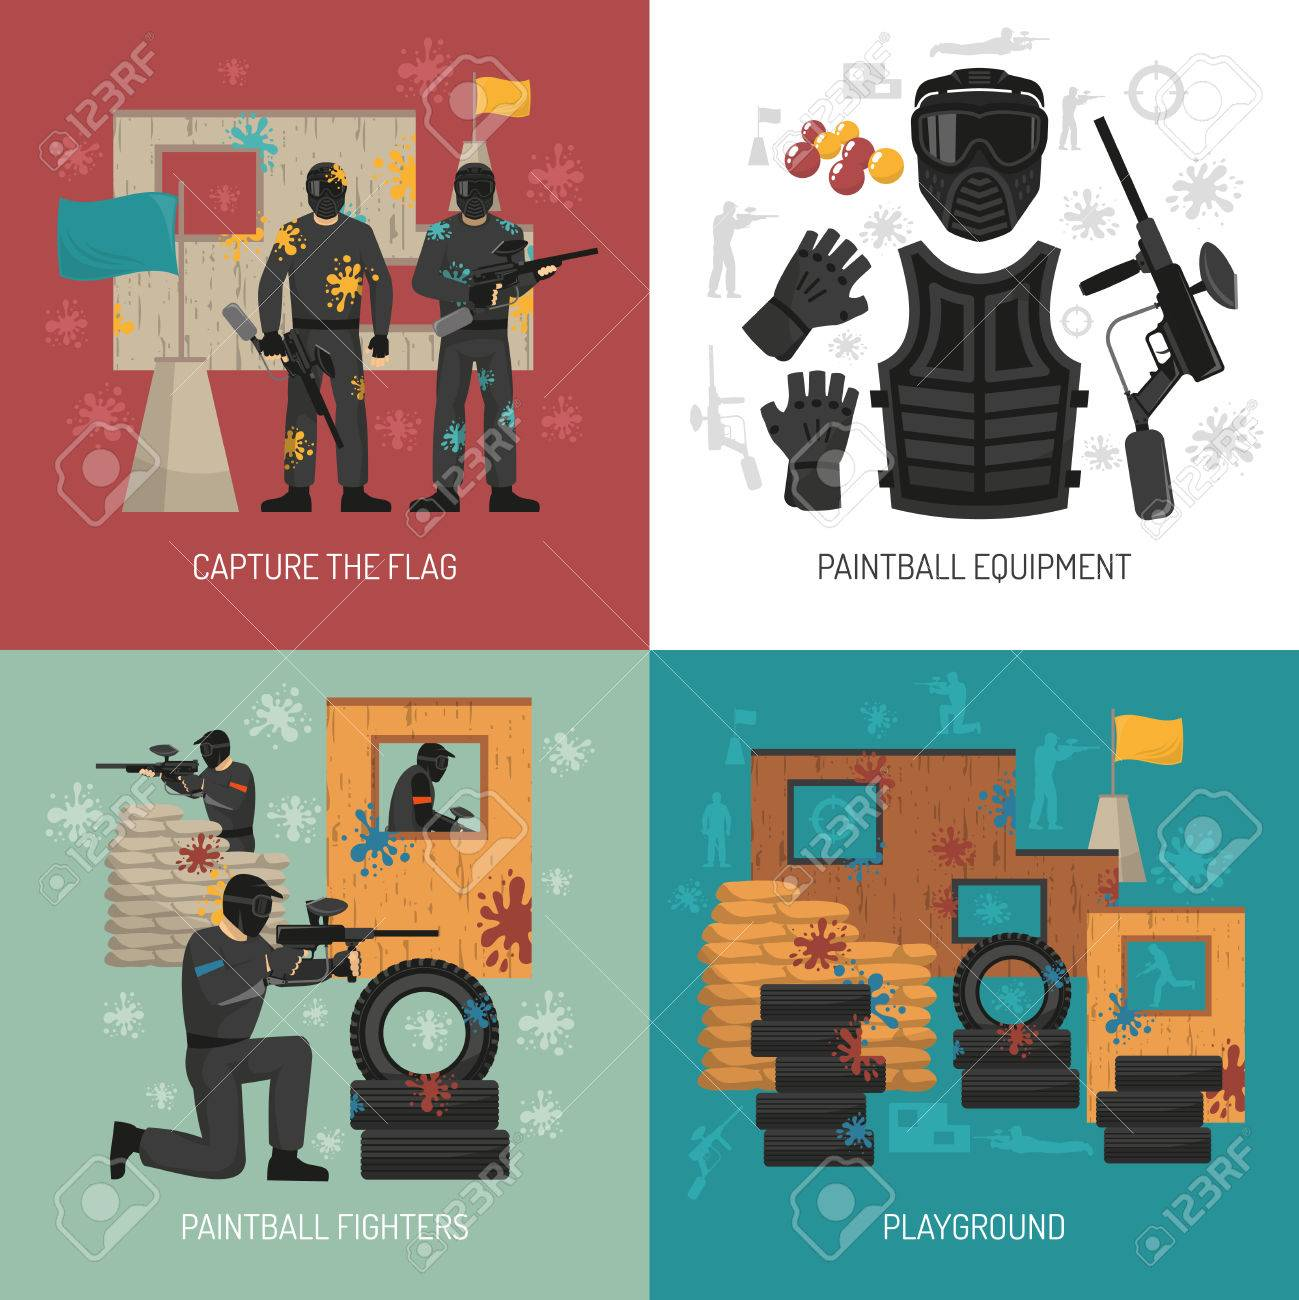 Flat paintball fighters field and equipment 2x2 design concept on colorful backgrounds isolated illustration Stock Vector